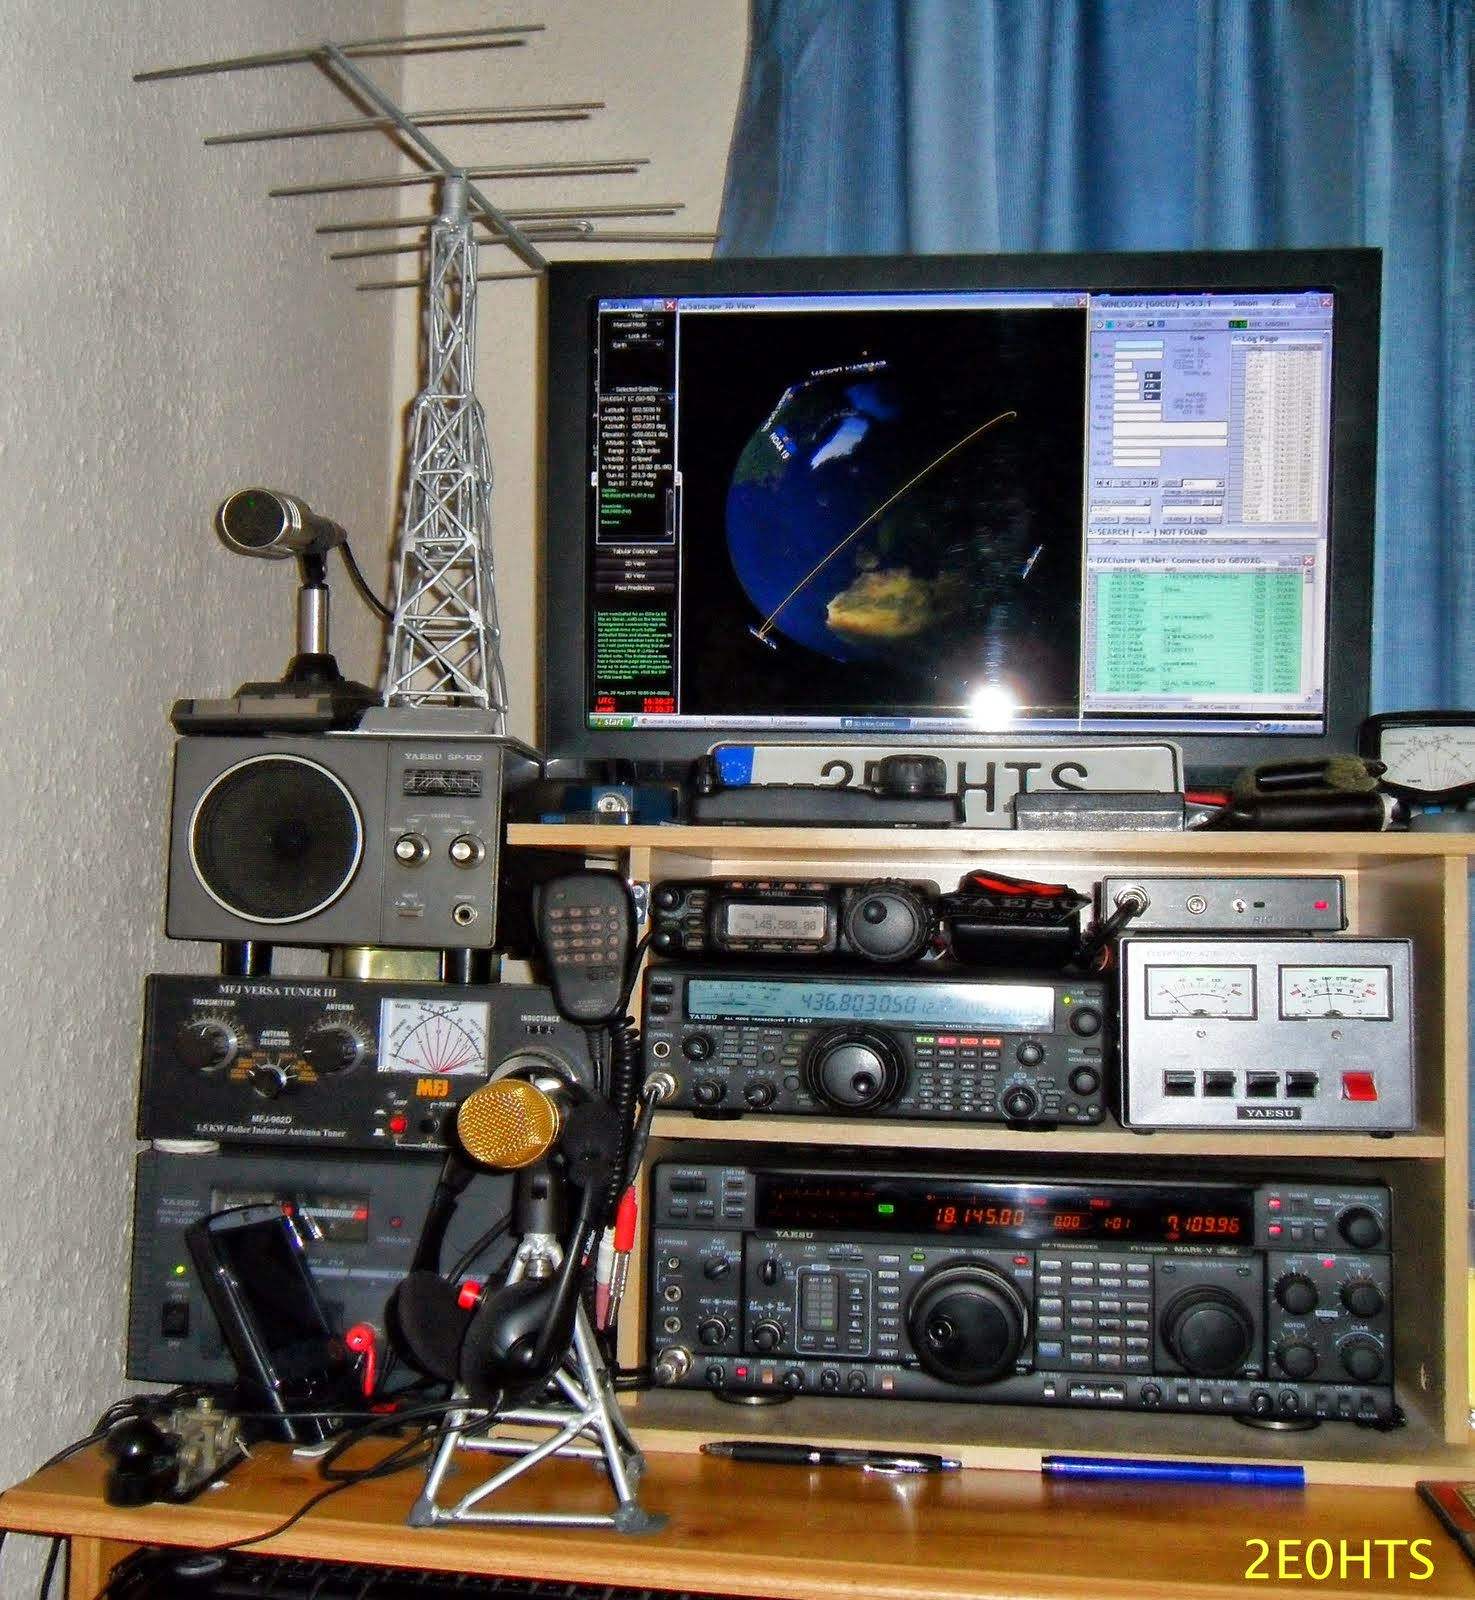 Used amateur radio gear